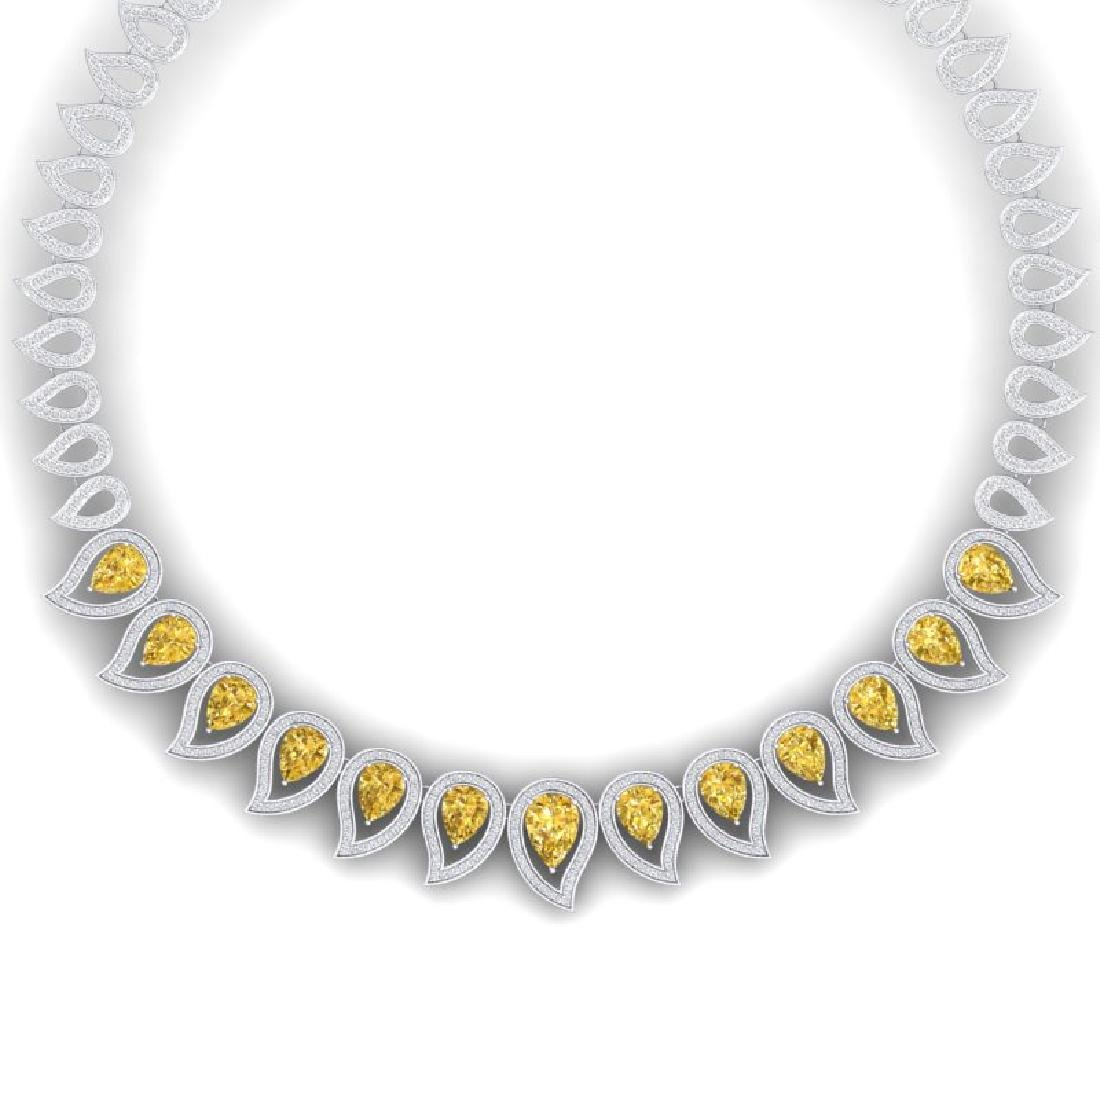 31.74 CTW Royalty Canary Citrine & VS Diamond Necklace